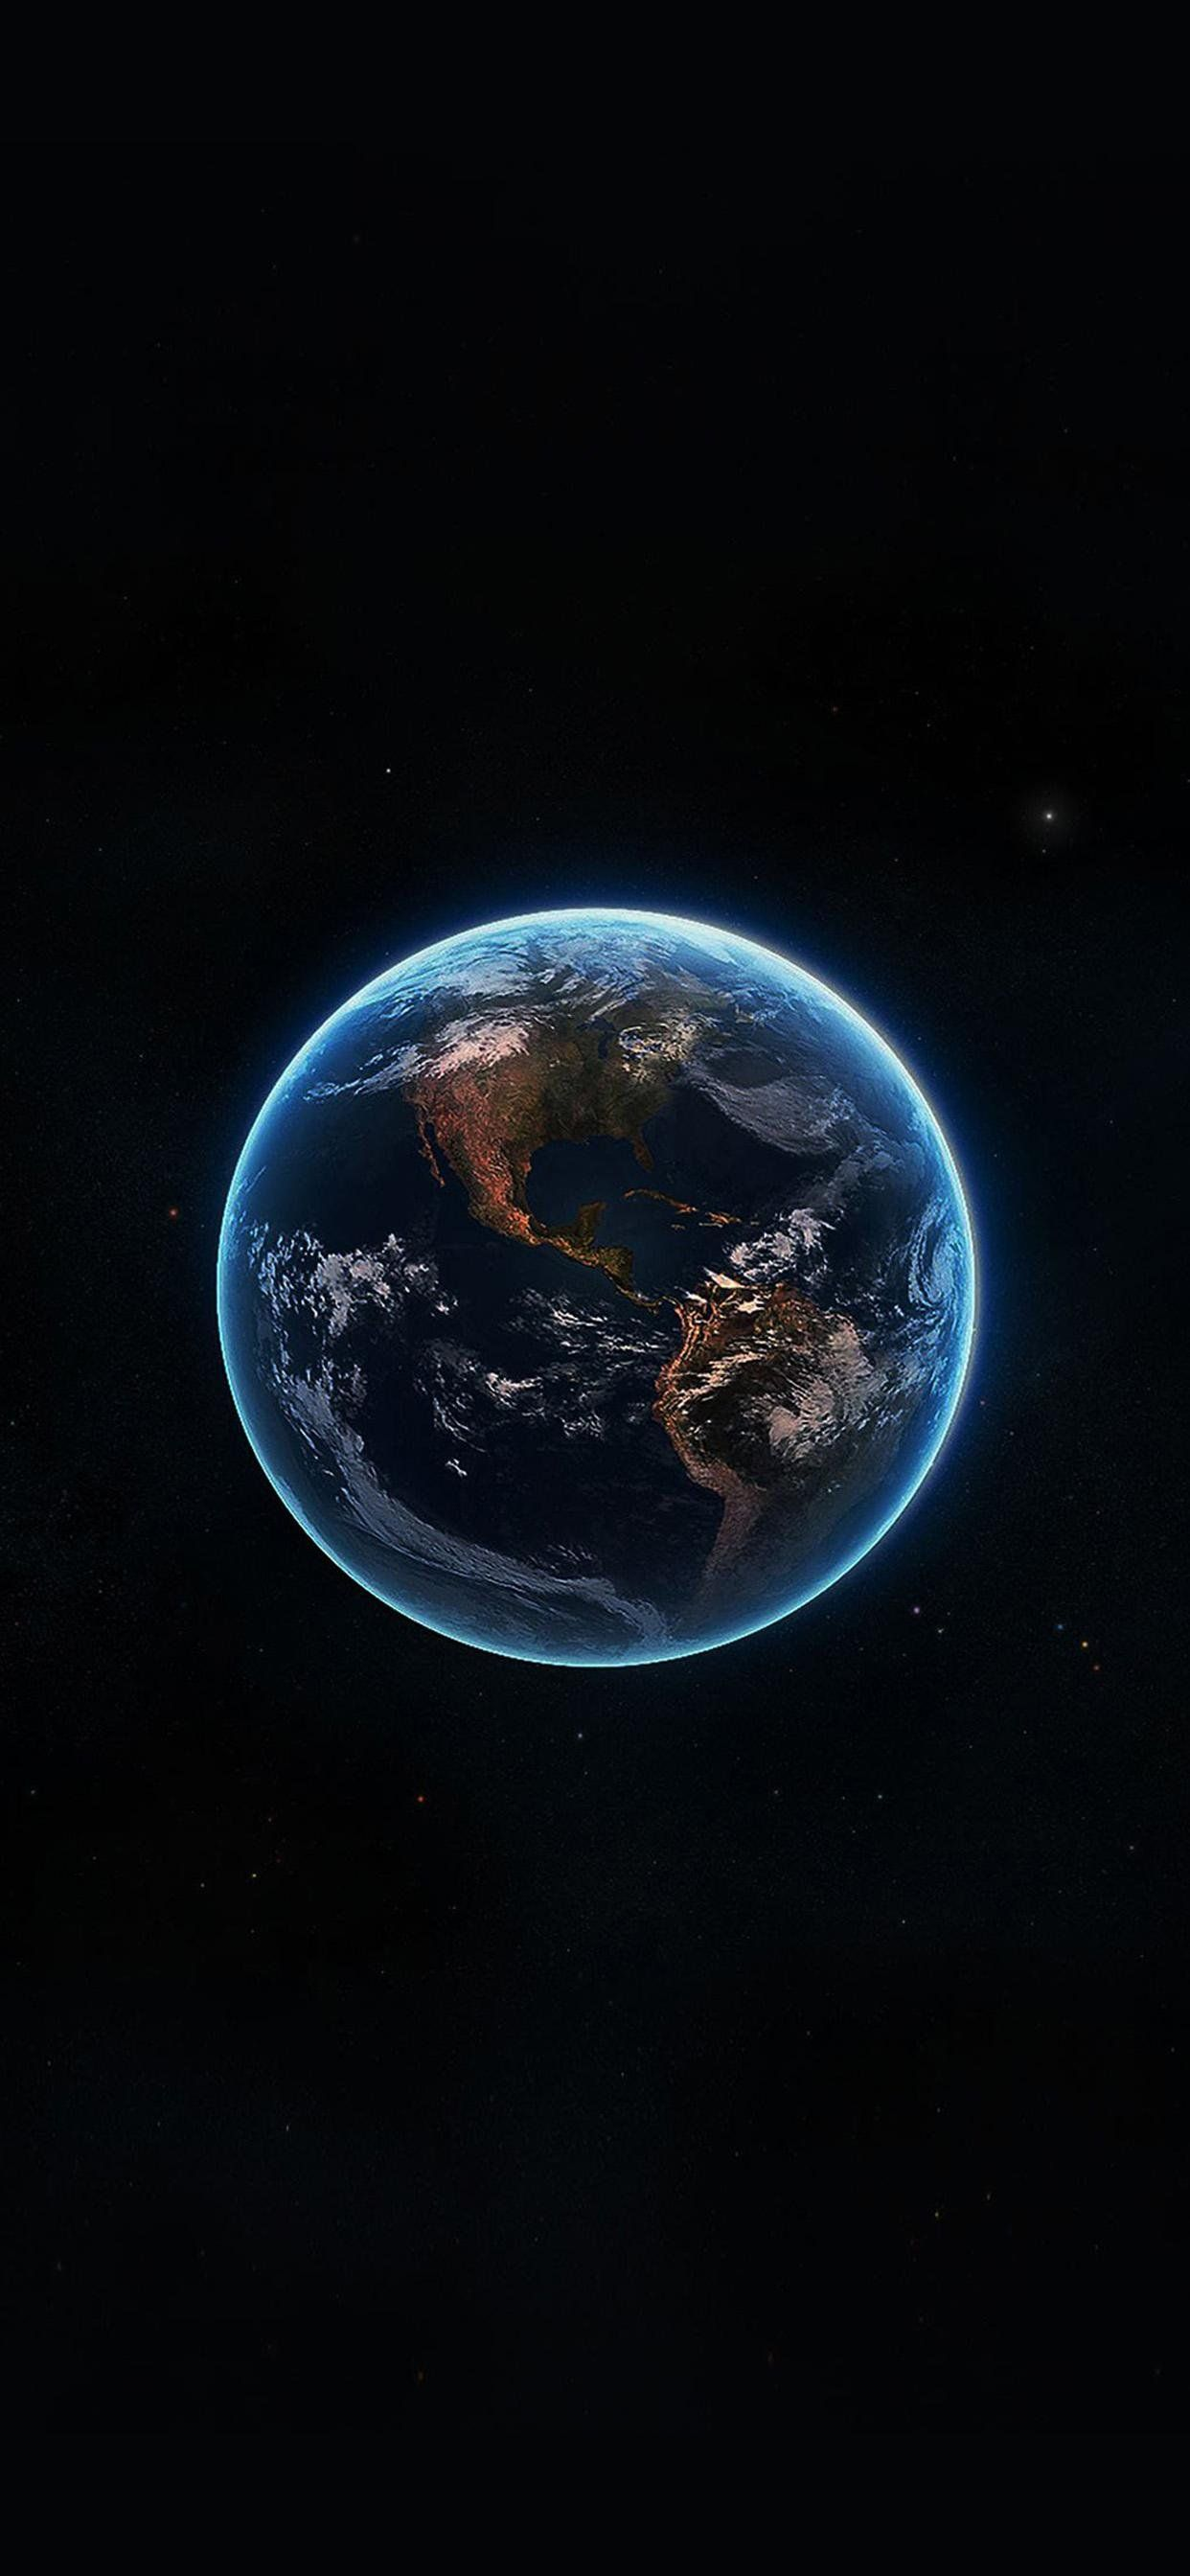 Planet Earth 4K Wallpapers - Top Free Planet Earth 4K ...